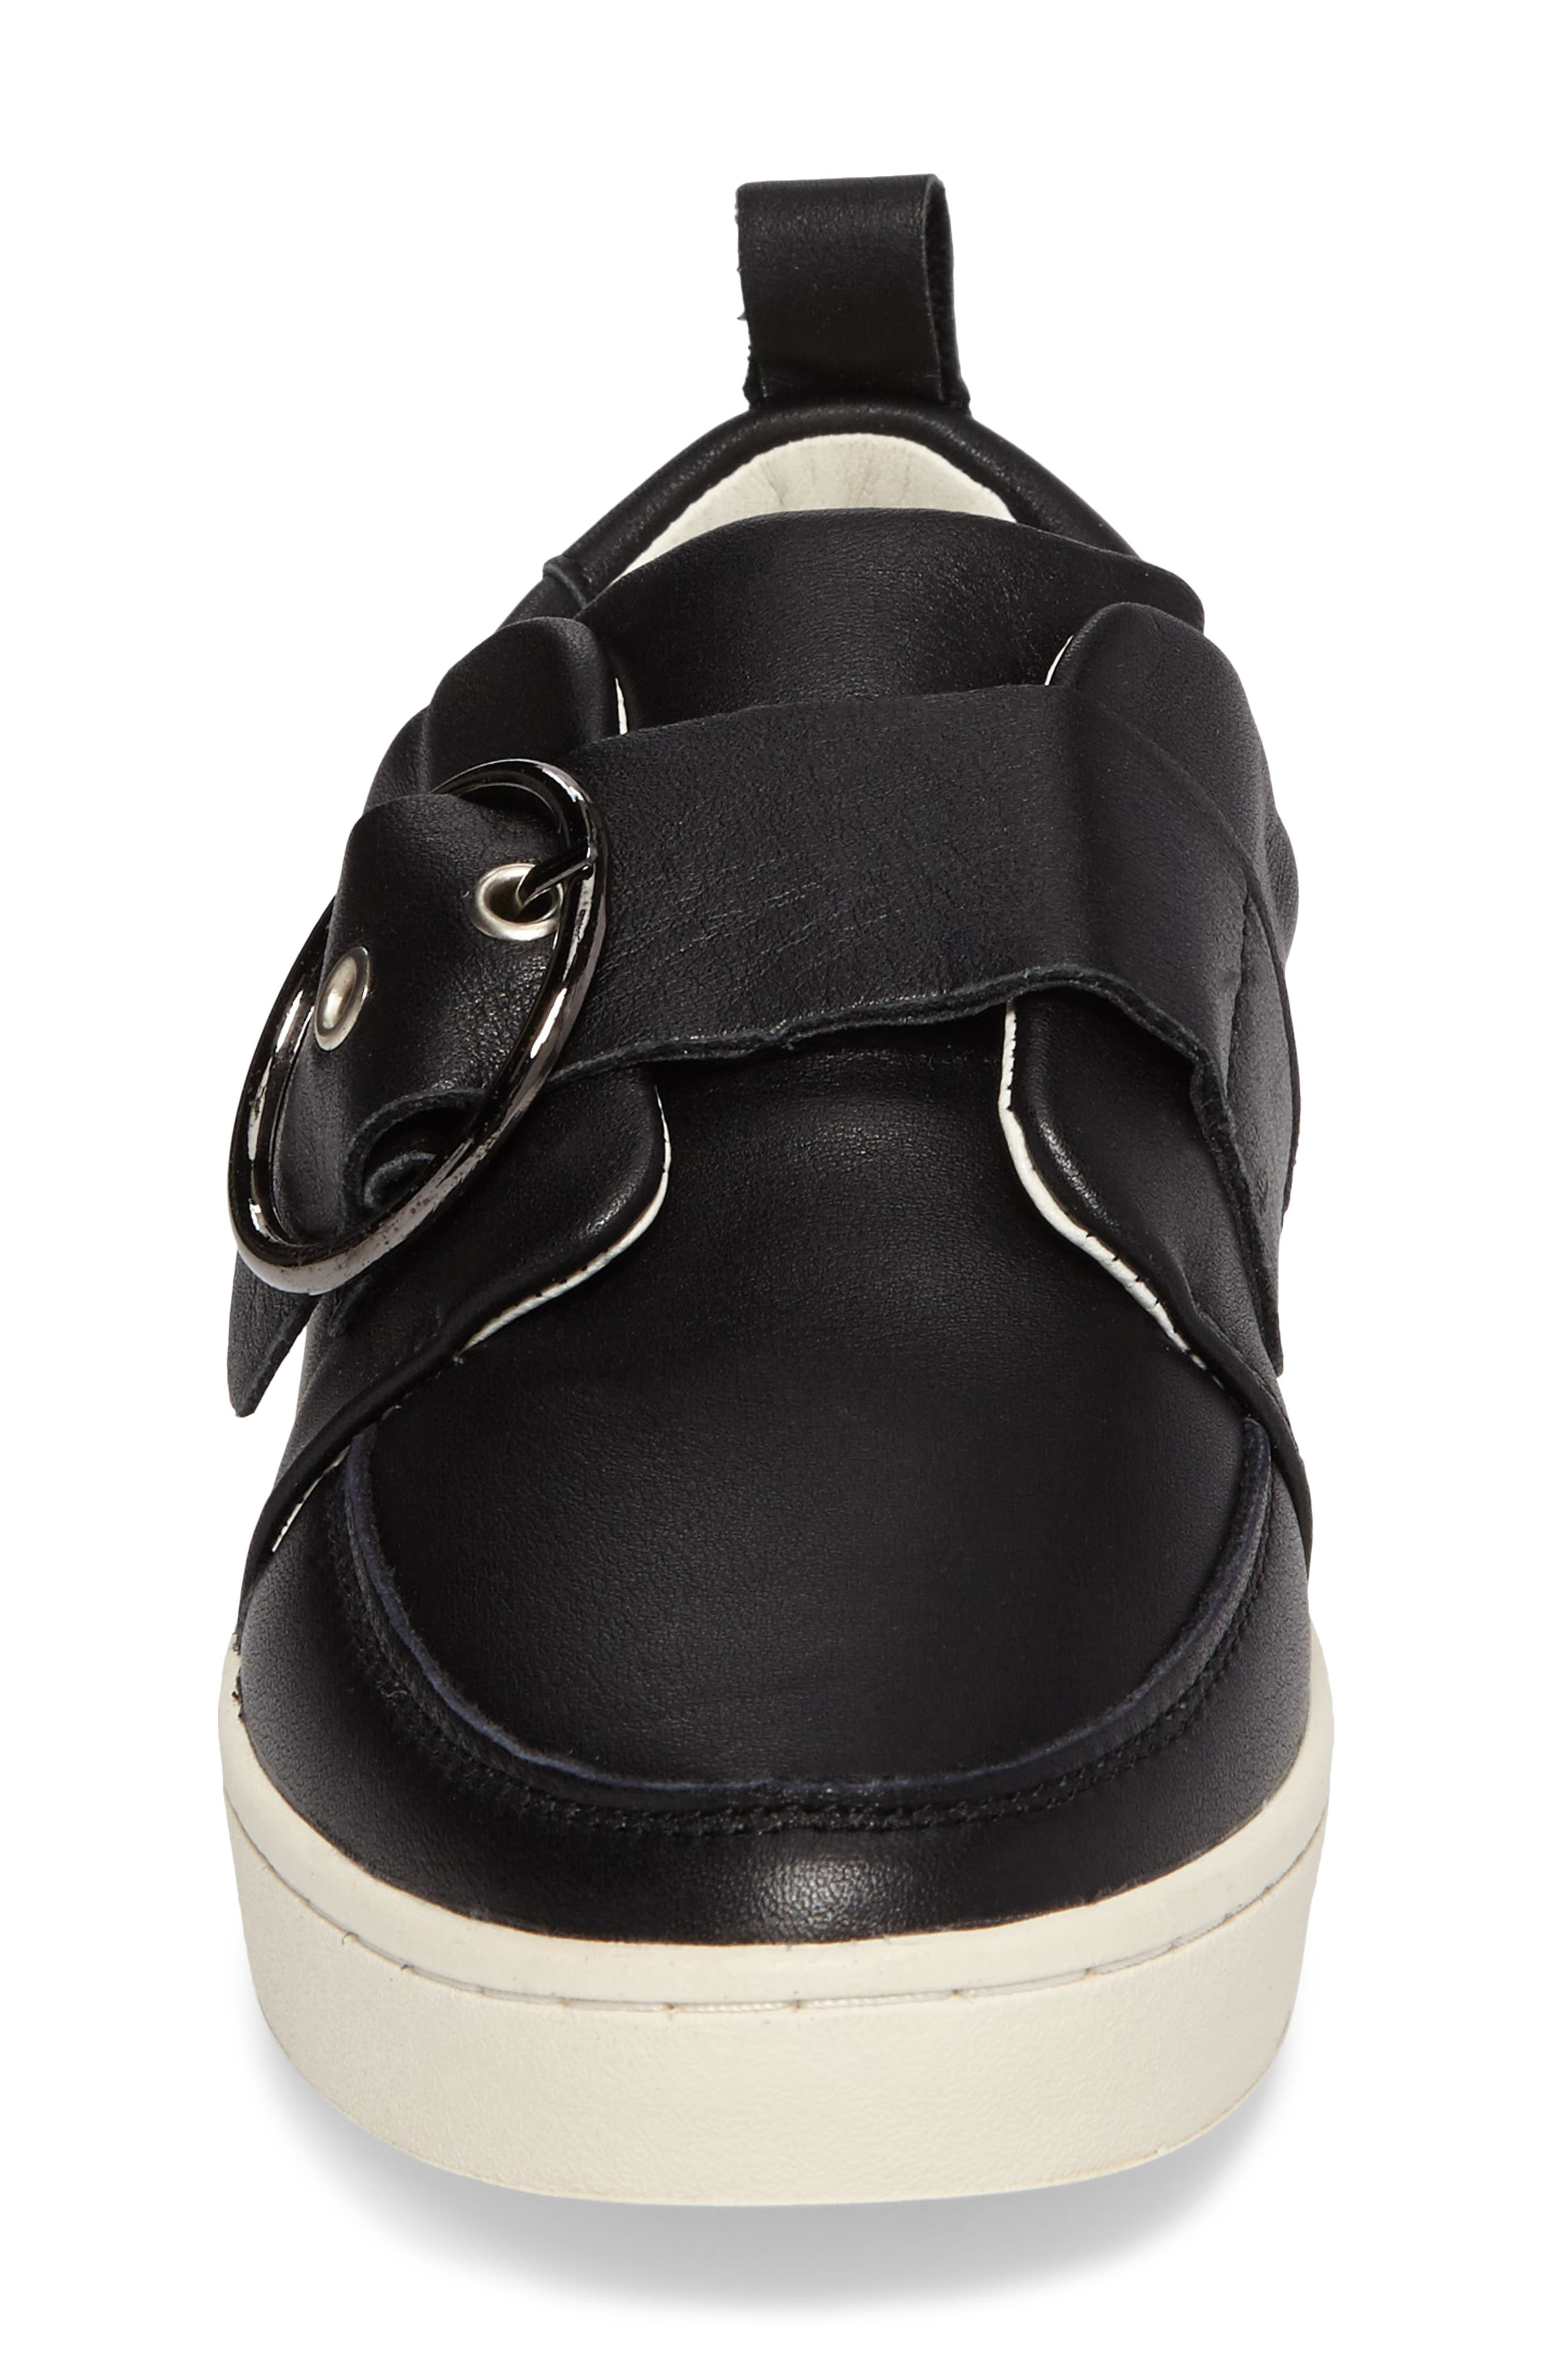 Mice Buckle Sneaker,                             Alternate thumbnail 4, color,                             Black Leather